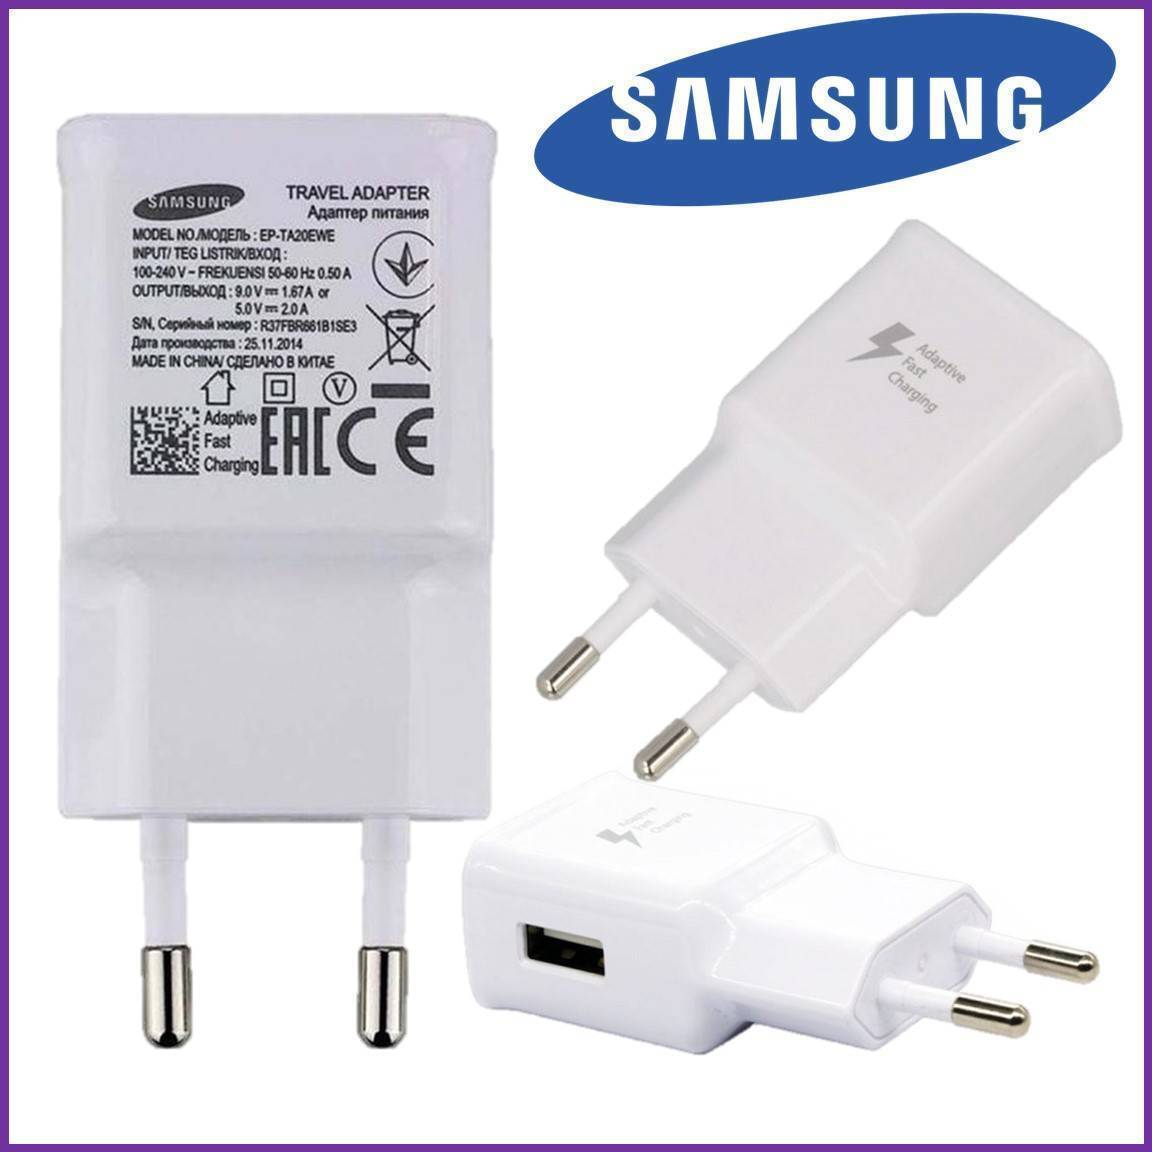 EP-TA20EWE Samsung Mobile Charger Phone Charger USB Adaptive Fast Charging Wall Charger